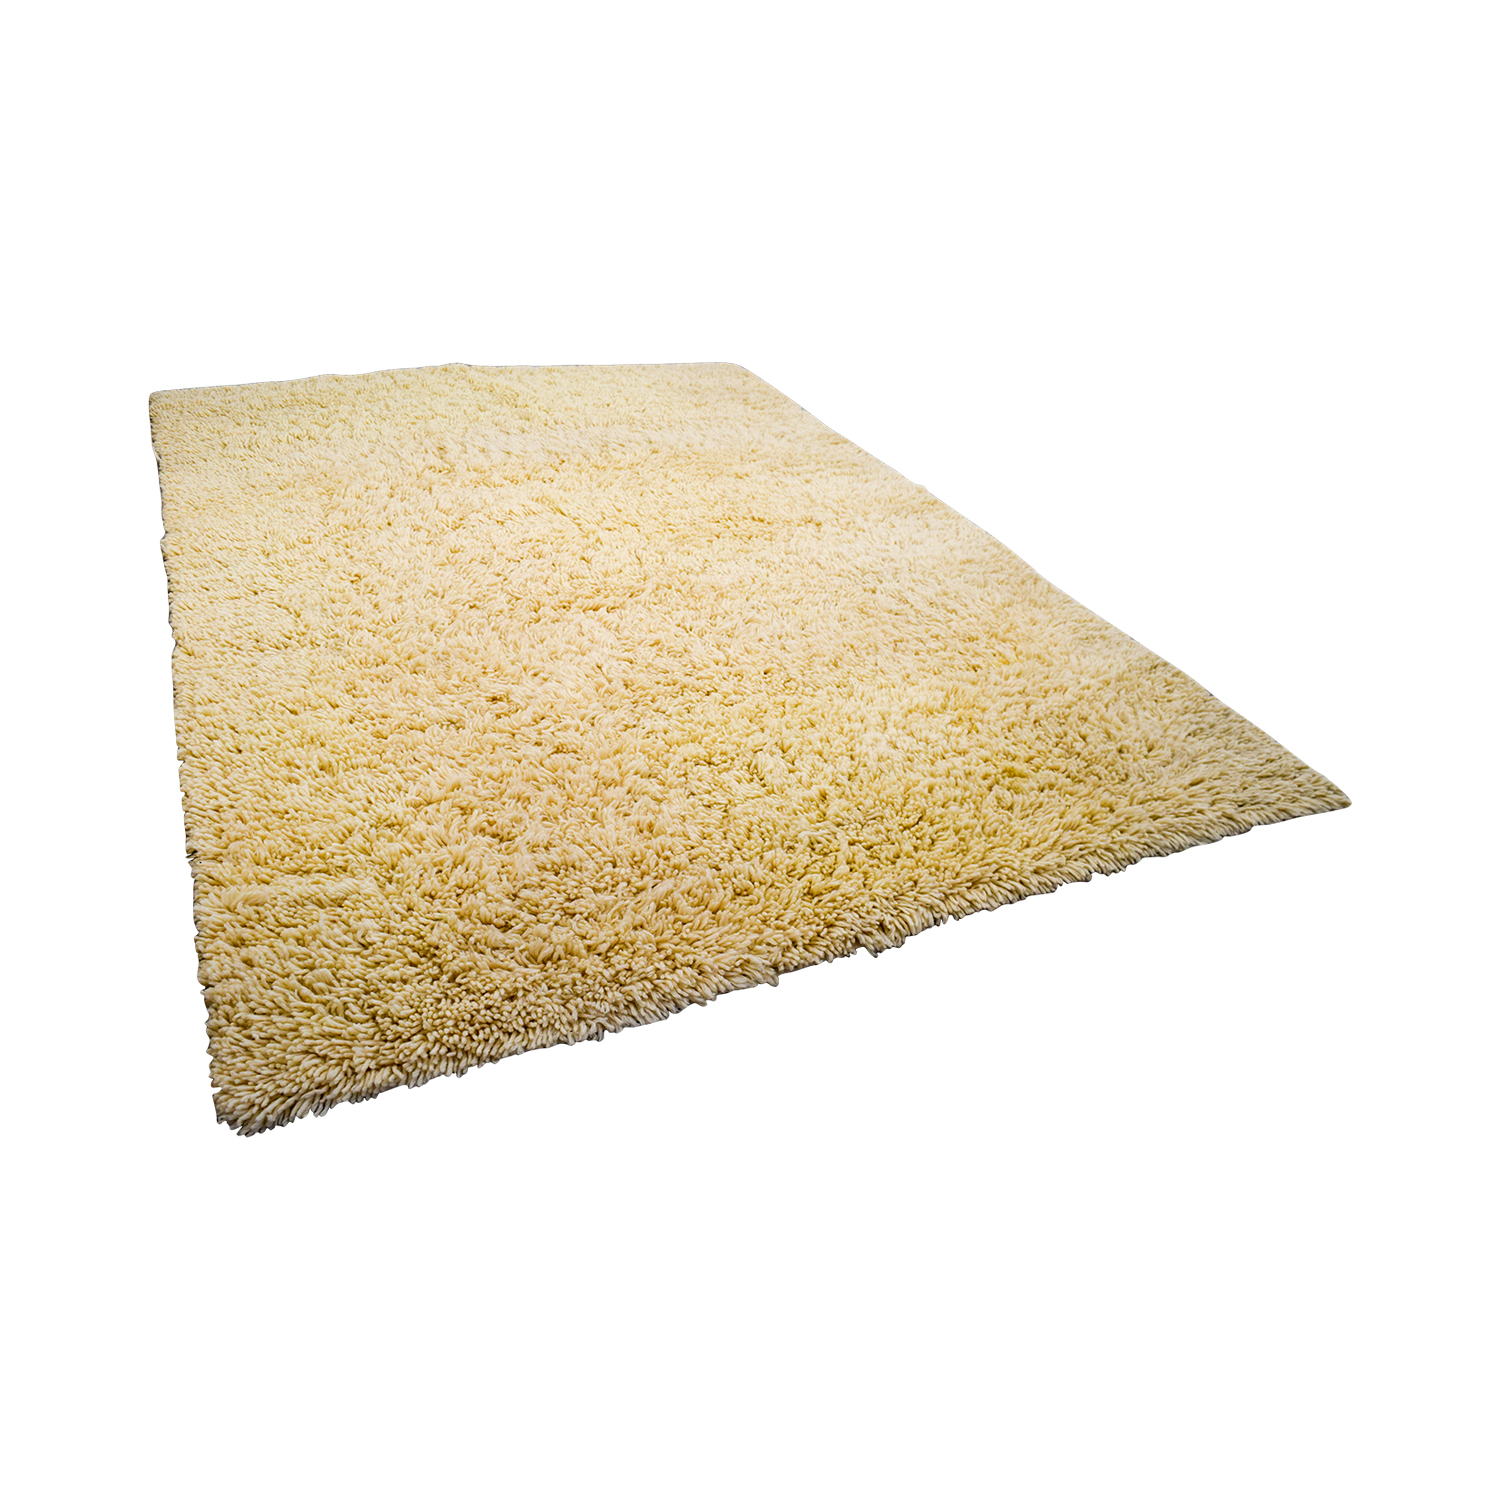 Antrim Rugs Antrim Rugs Cream Wool Calculator Shag Rug Decor